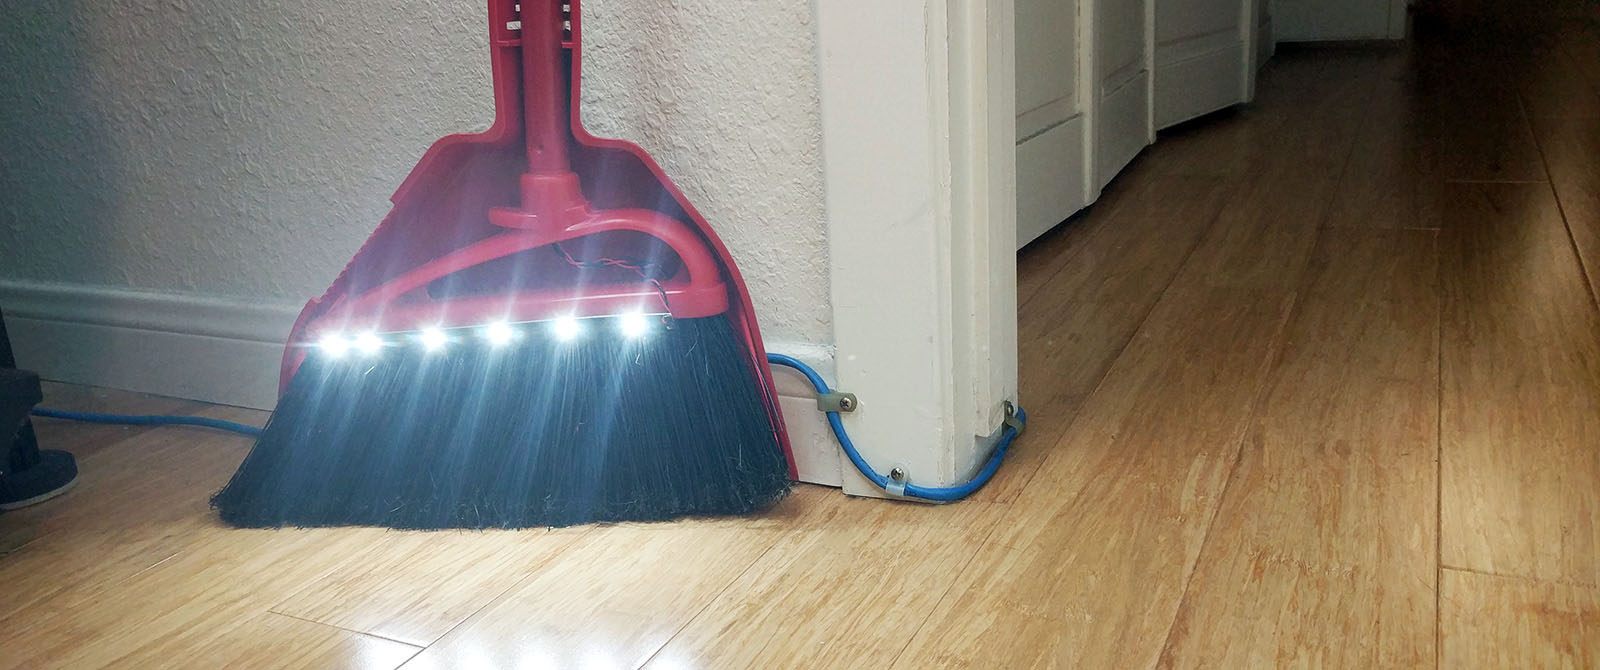 Build An Led Broom To Light Up Life S Dark Corners Make